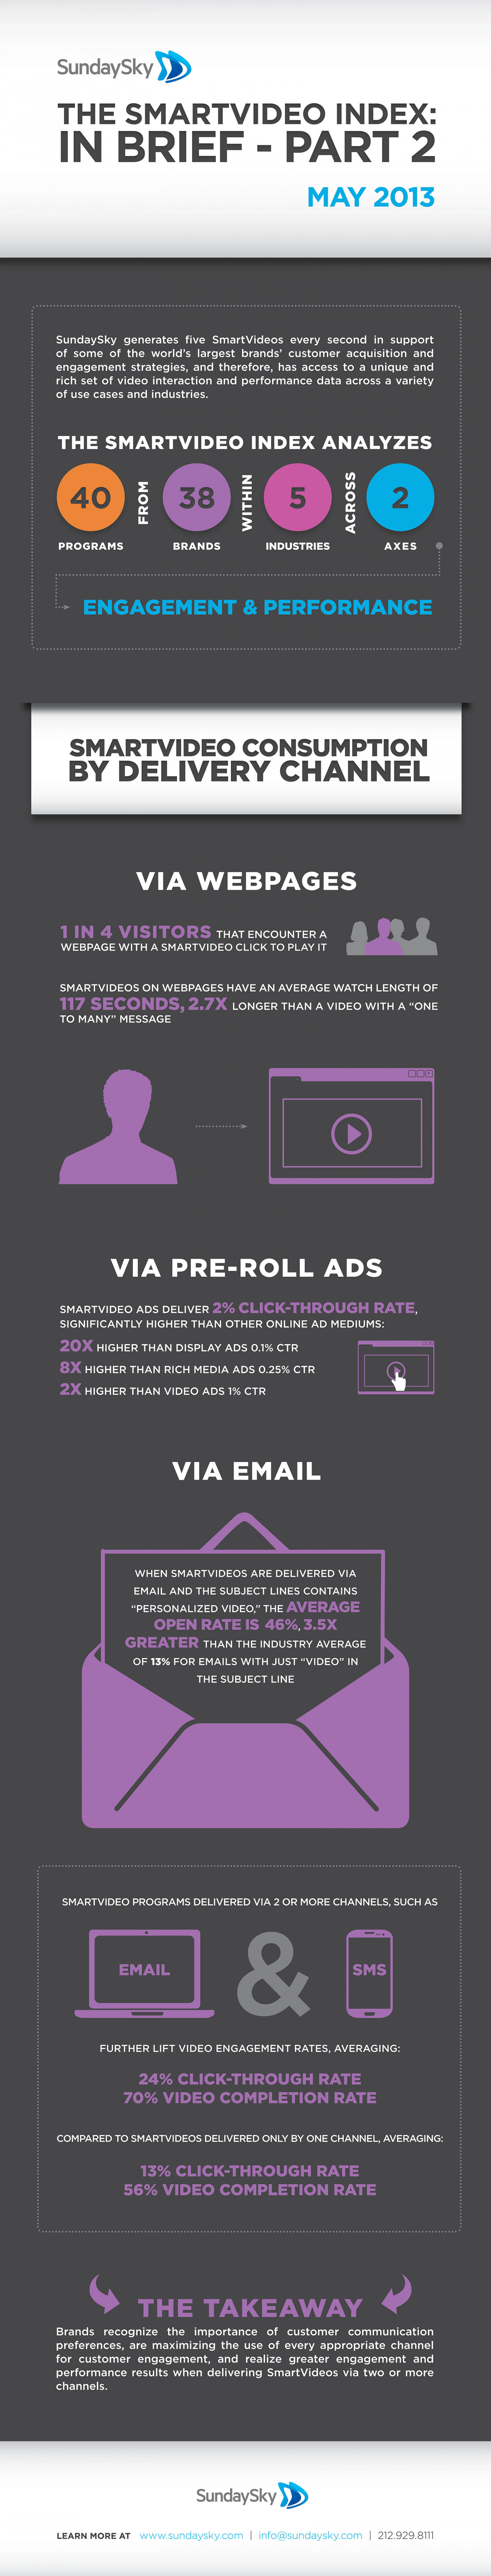 The SmartVideo Index: In Brief - Part 2 Infographic